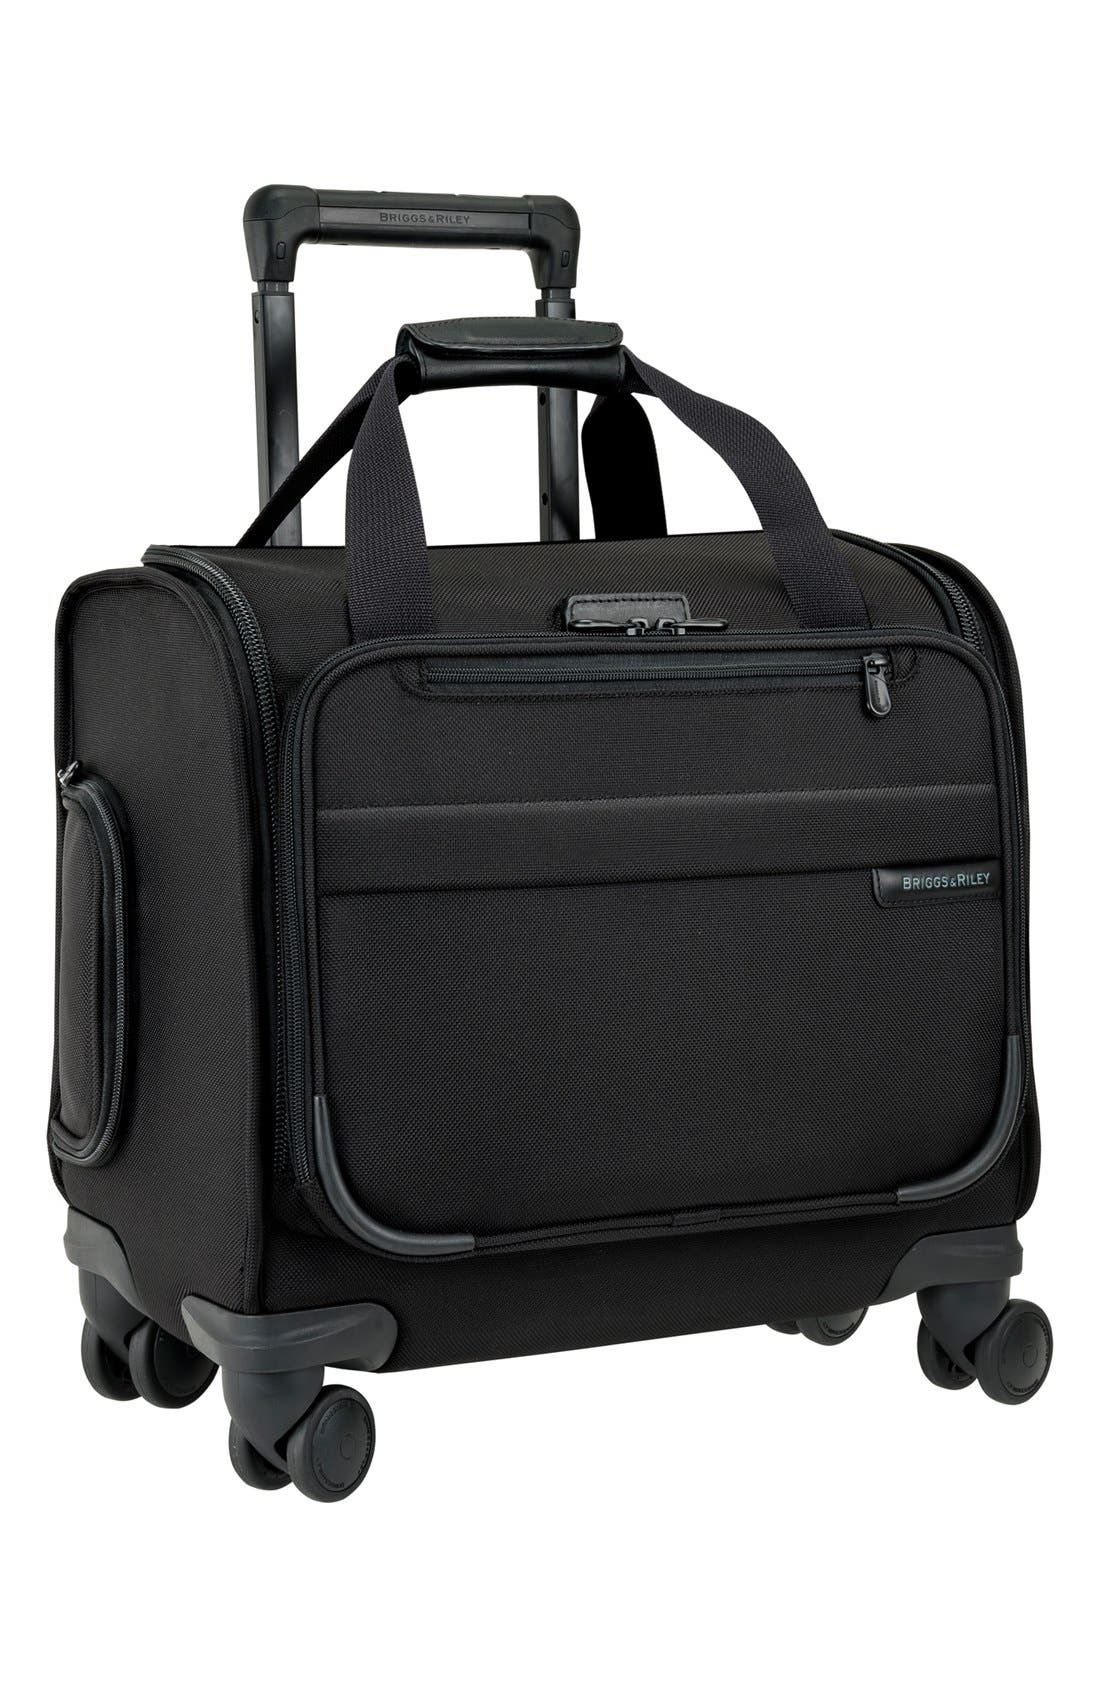 Main Image - Briggs & Riley 'Cabin' Spinner Carry-On (16 Inch)